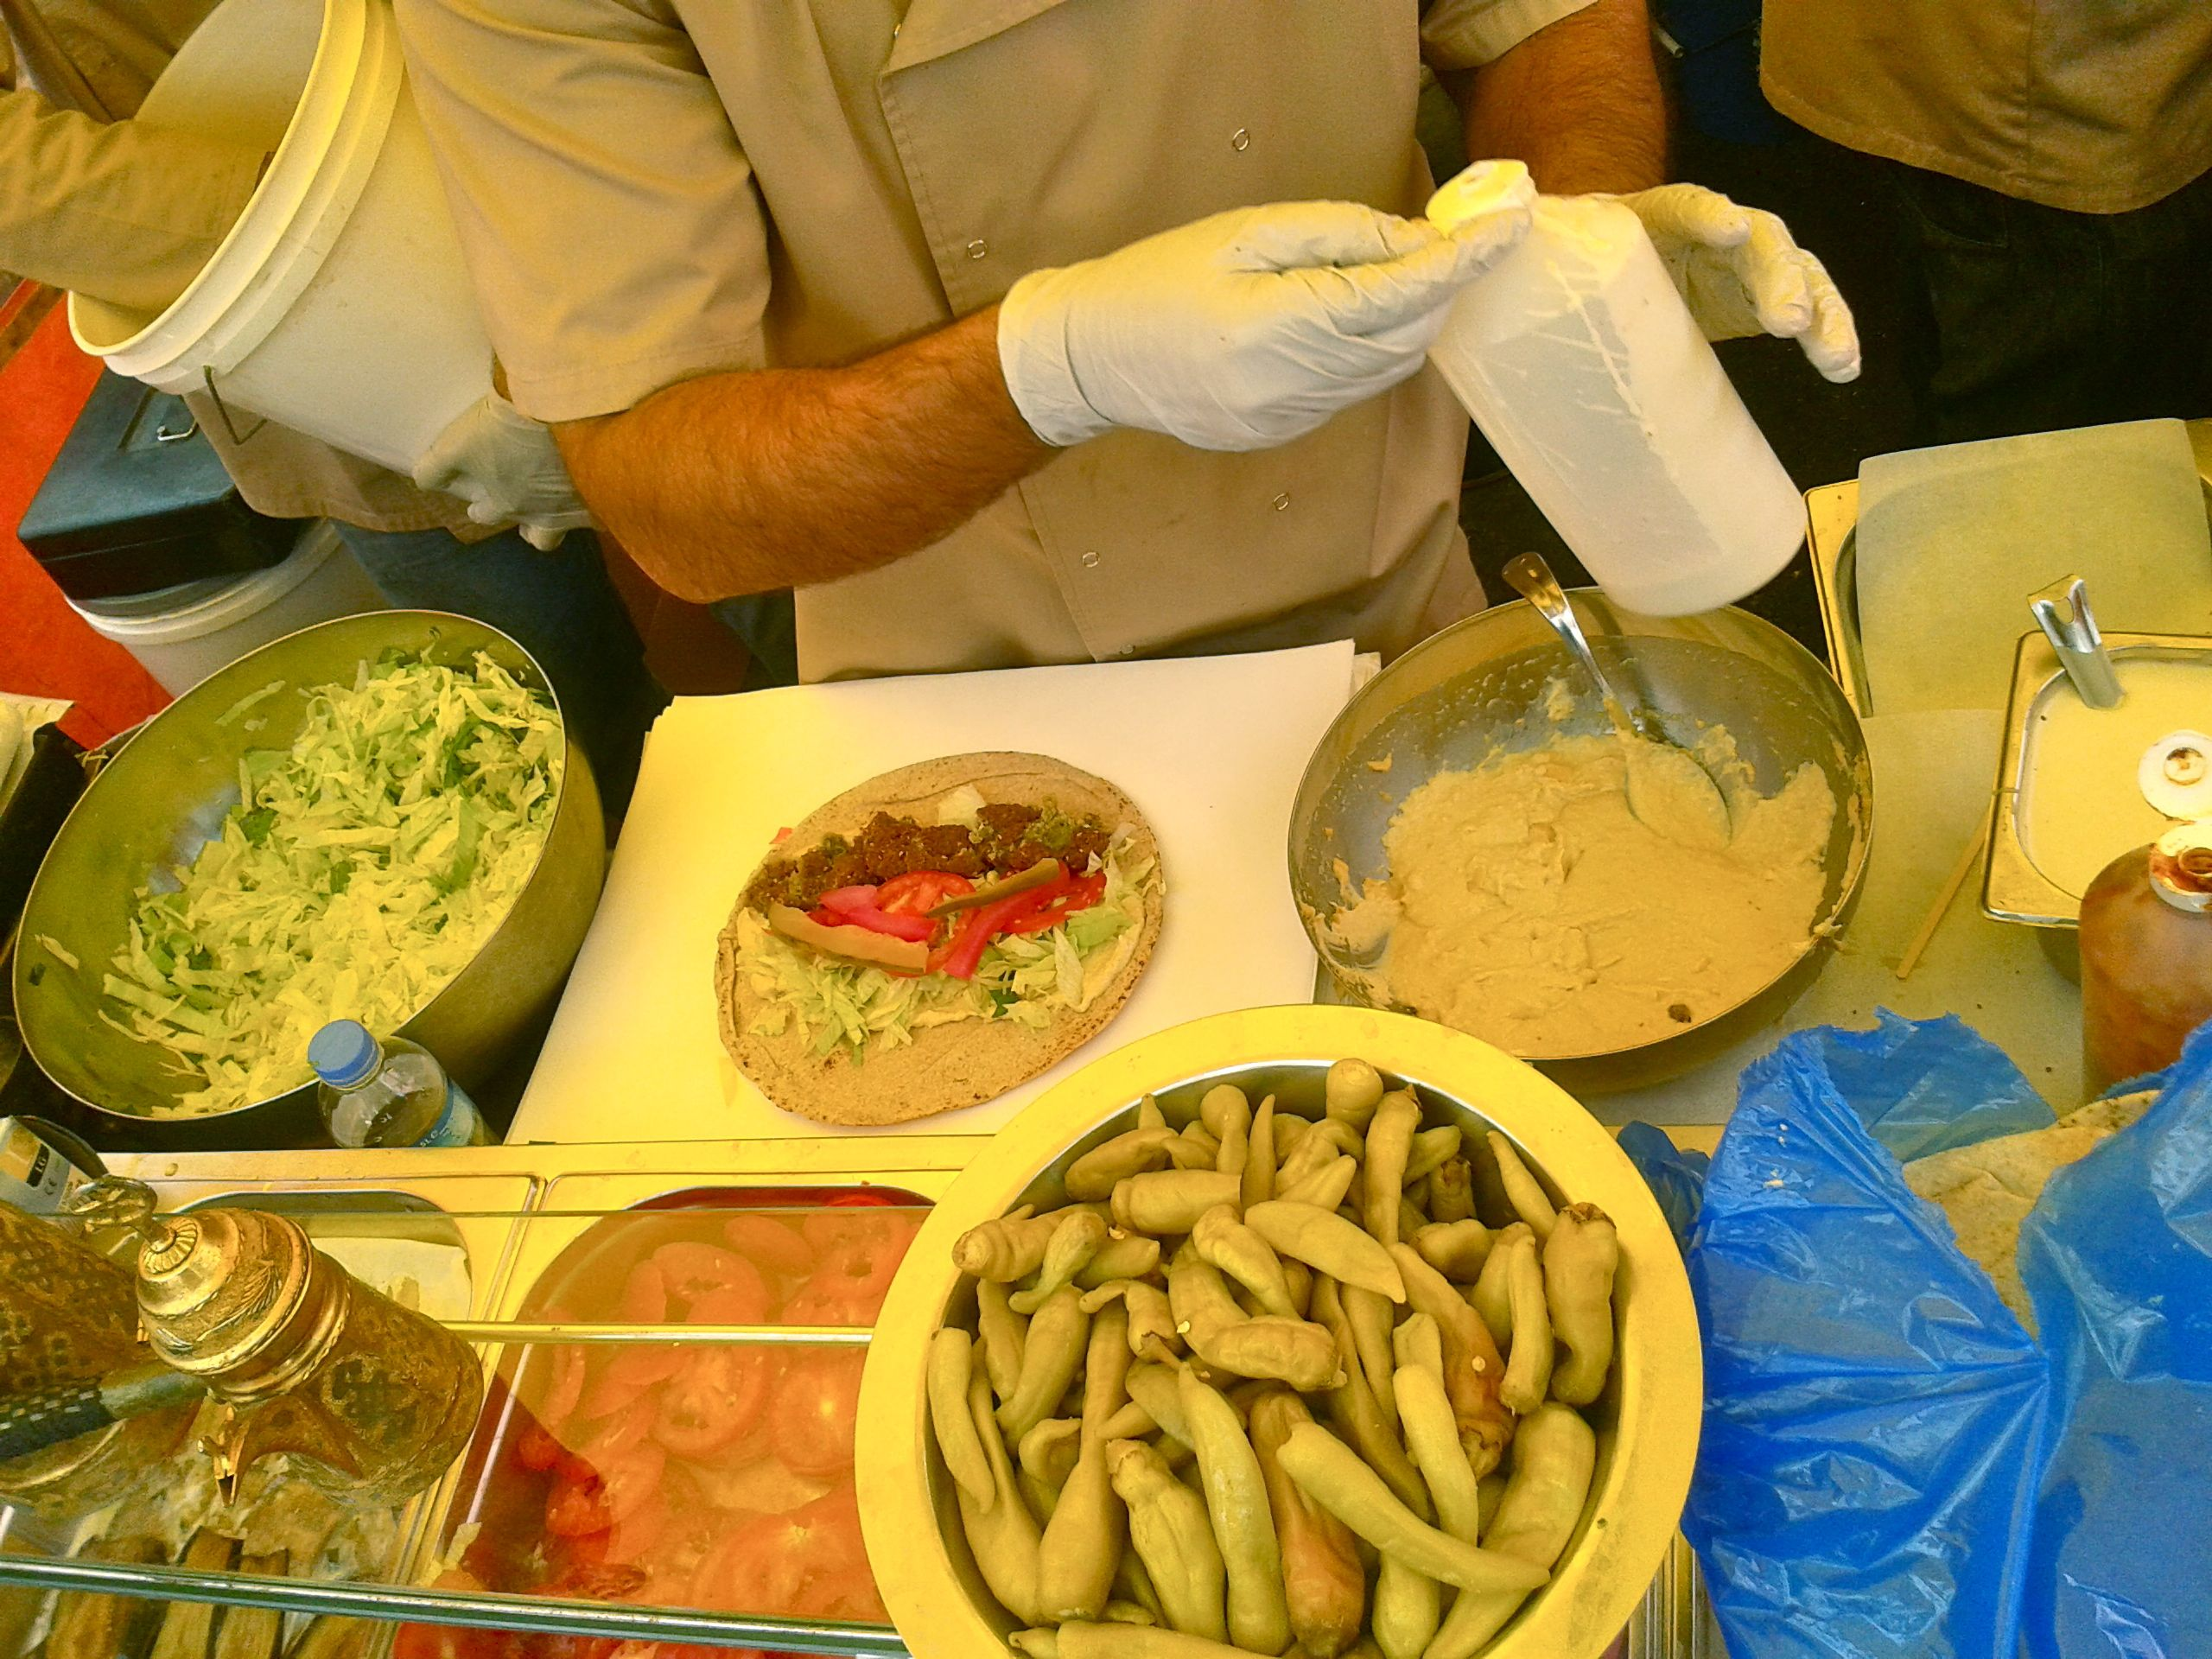 https://i2.wp.com/fatgayvegan.com/wp-content/uploads/2013/08/falafel-making.jpg?fit=2560%2C1920